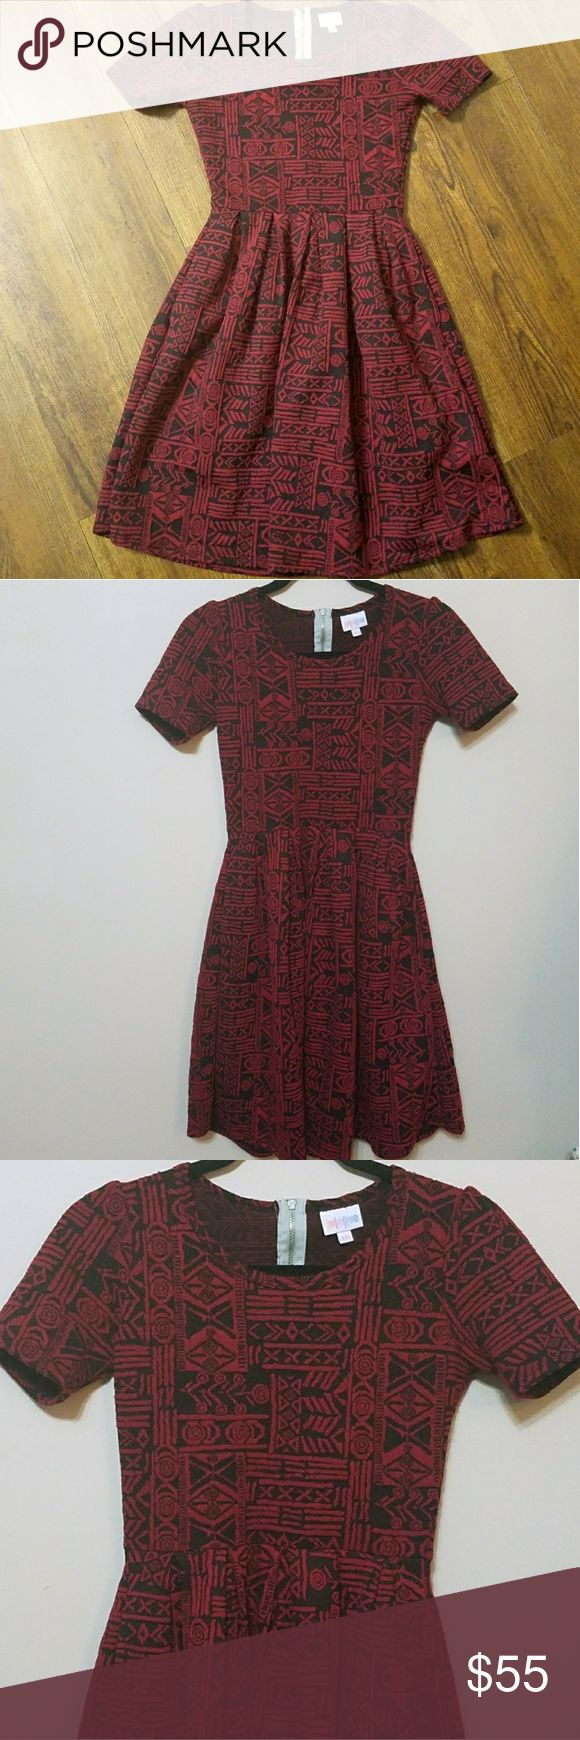 Lularoe XXS red black aztec Jacquard Amelia dress With its red and black aztec/tribal inspired print, This Jacquard Amelia dress from lularoe is super cute!  Lularoe Amelia style Red and black print Jacquard style Short sleeves Knee length Pockets on the skirt Zip back Polyester/spandex blend  The lularoe Amelia dress is stretchy and comfortable. An XXS is perfect for sizes 00 and 0!  The dress is in EXCELLENT condition - it could be mistaken for brand new!  Freshly steamed LuLaRoe Dresses